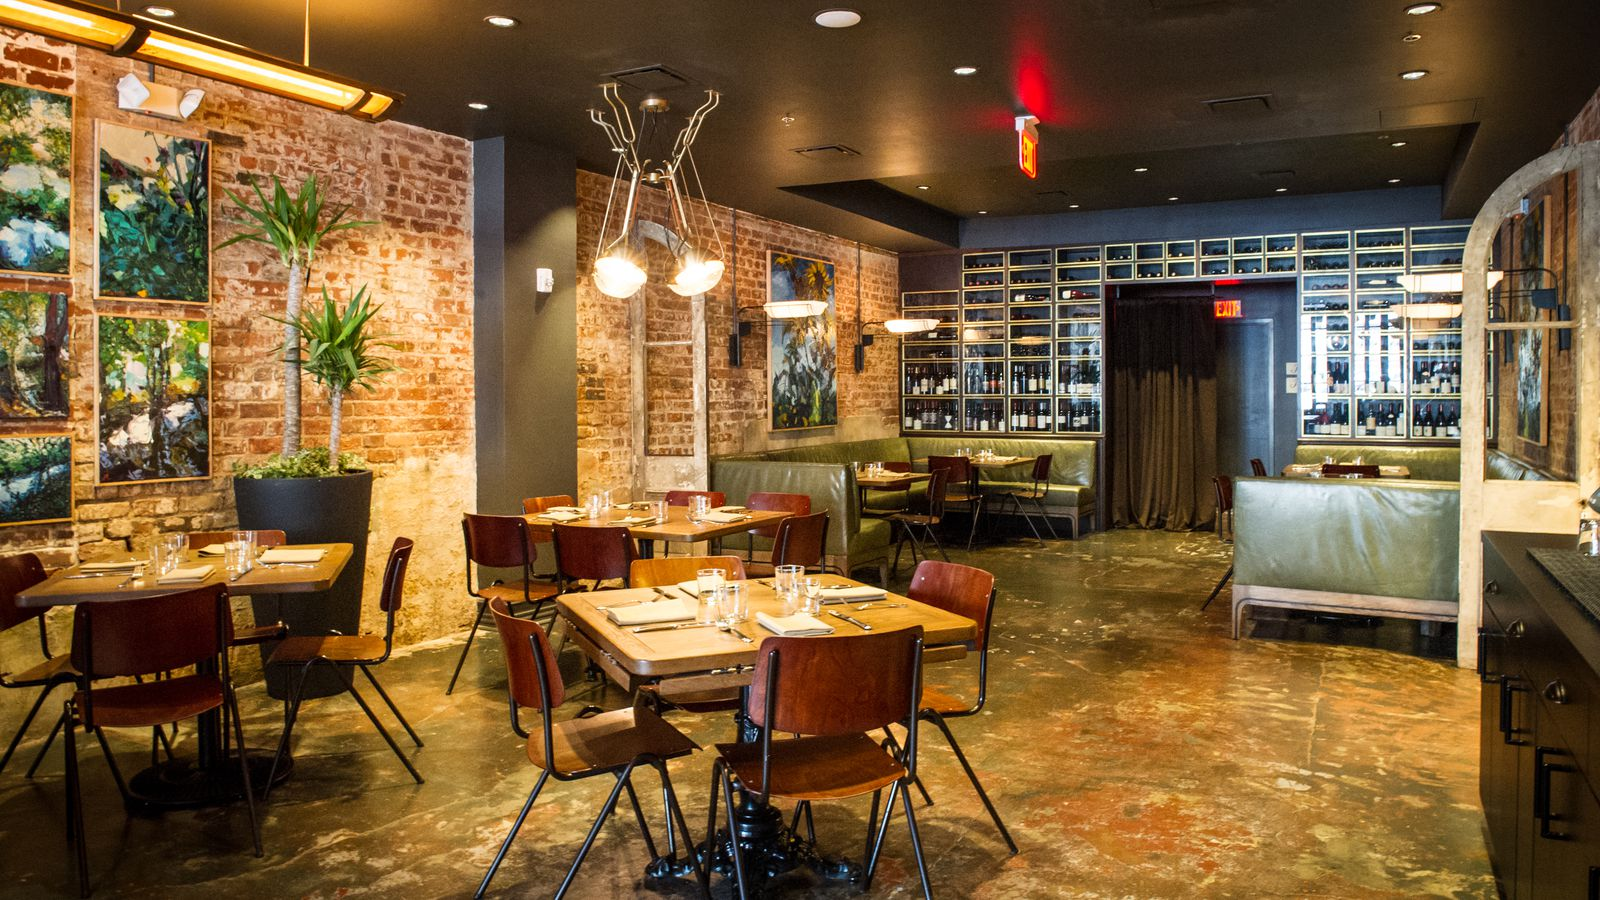 Try Mother's Next Door! With its original exposed brick and gold plaster trim, Mother's Next Door's distressed warehouse feel lends every gathering the authenticity of tradition. The venue consists of two large rooms, the Dining Room and the Banquet Room.